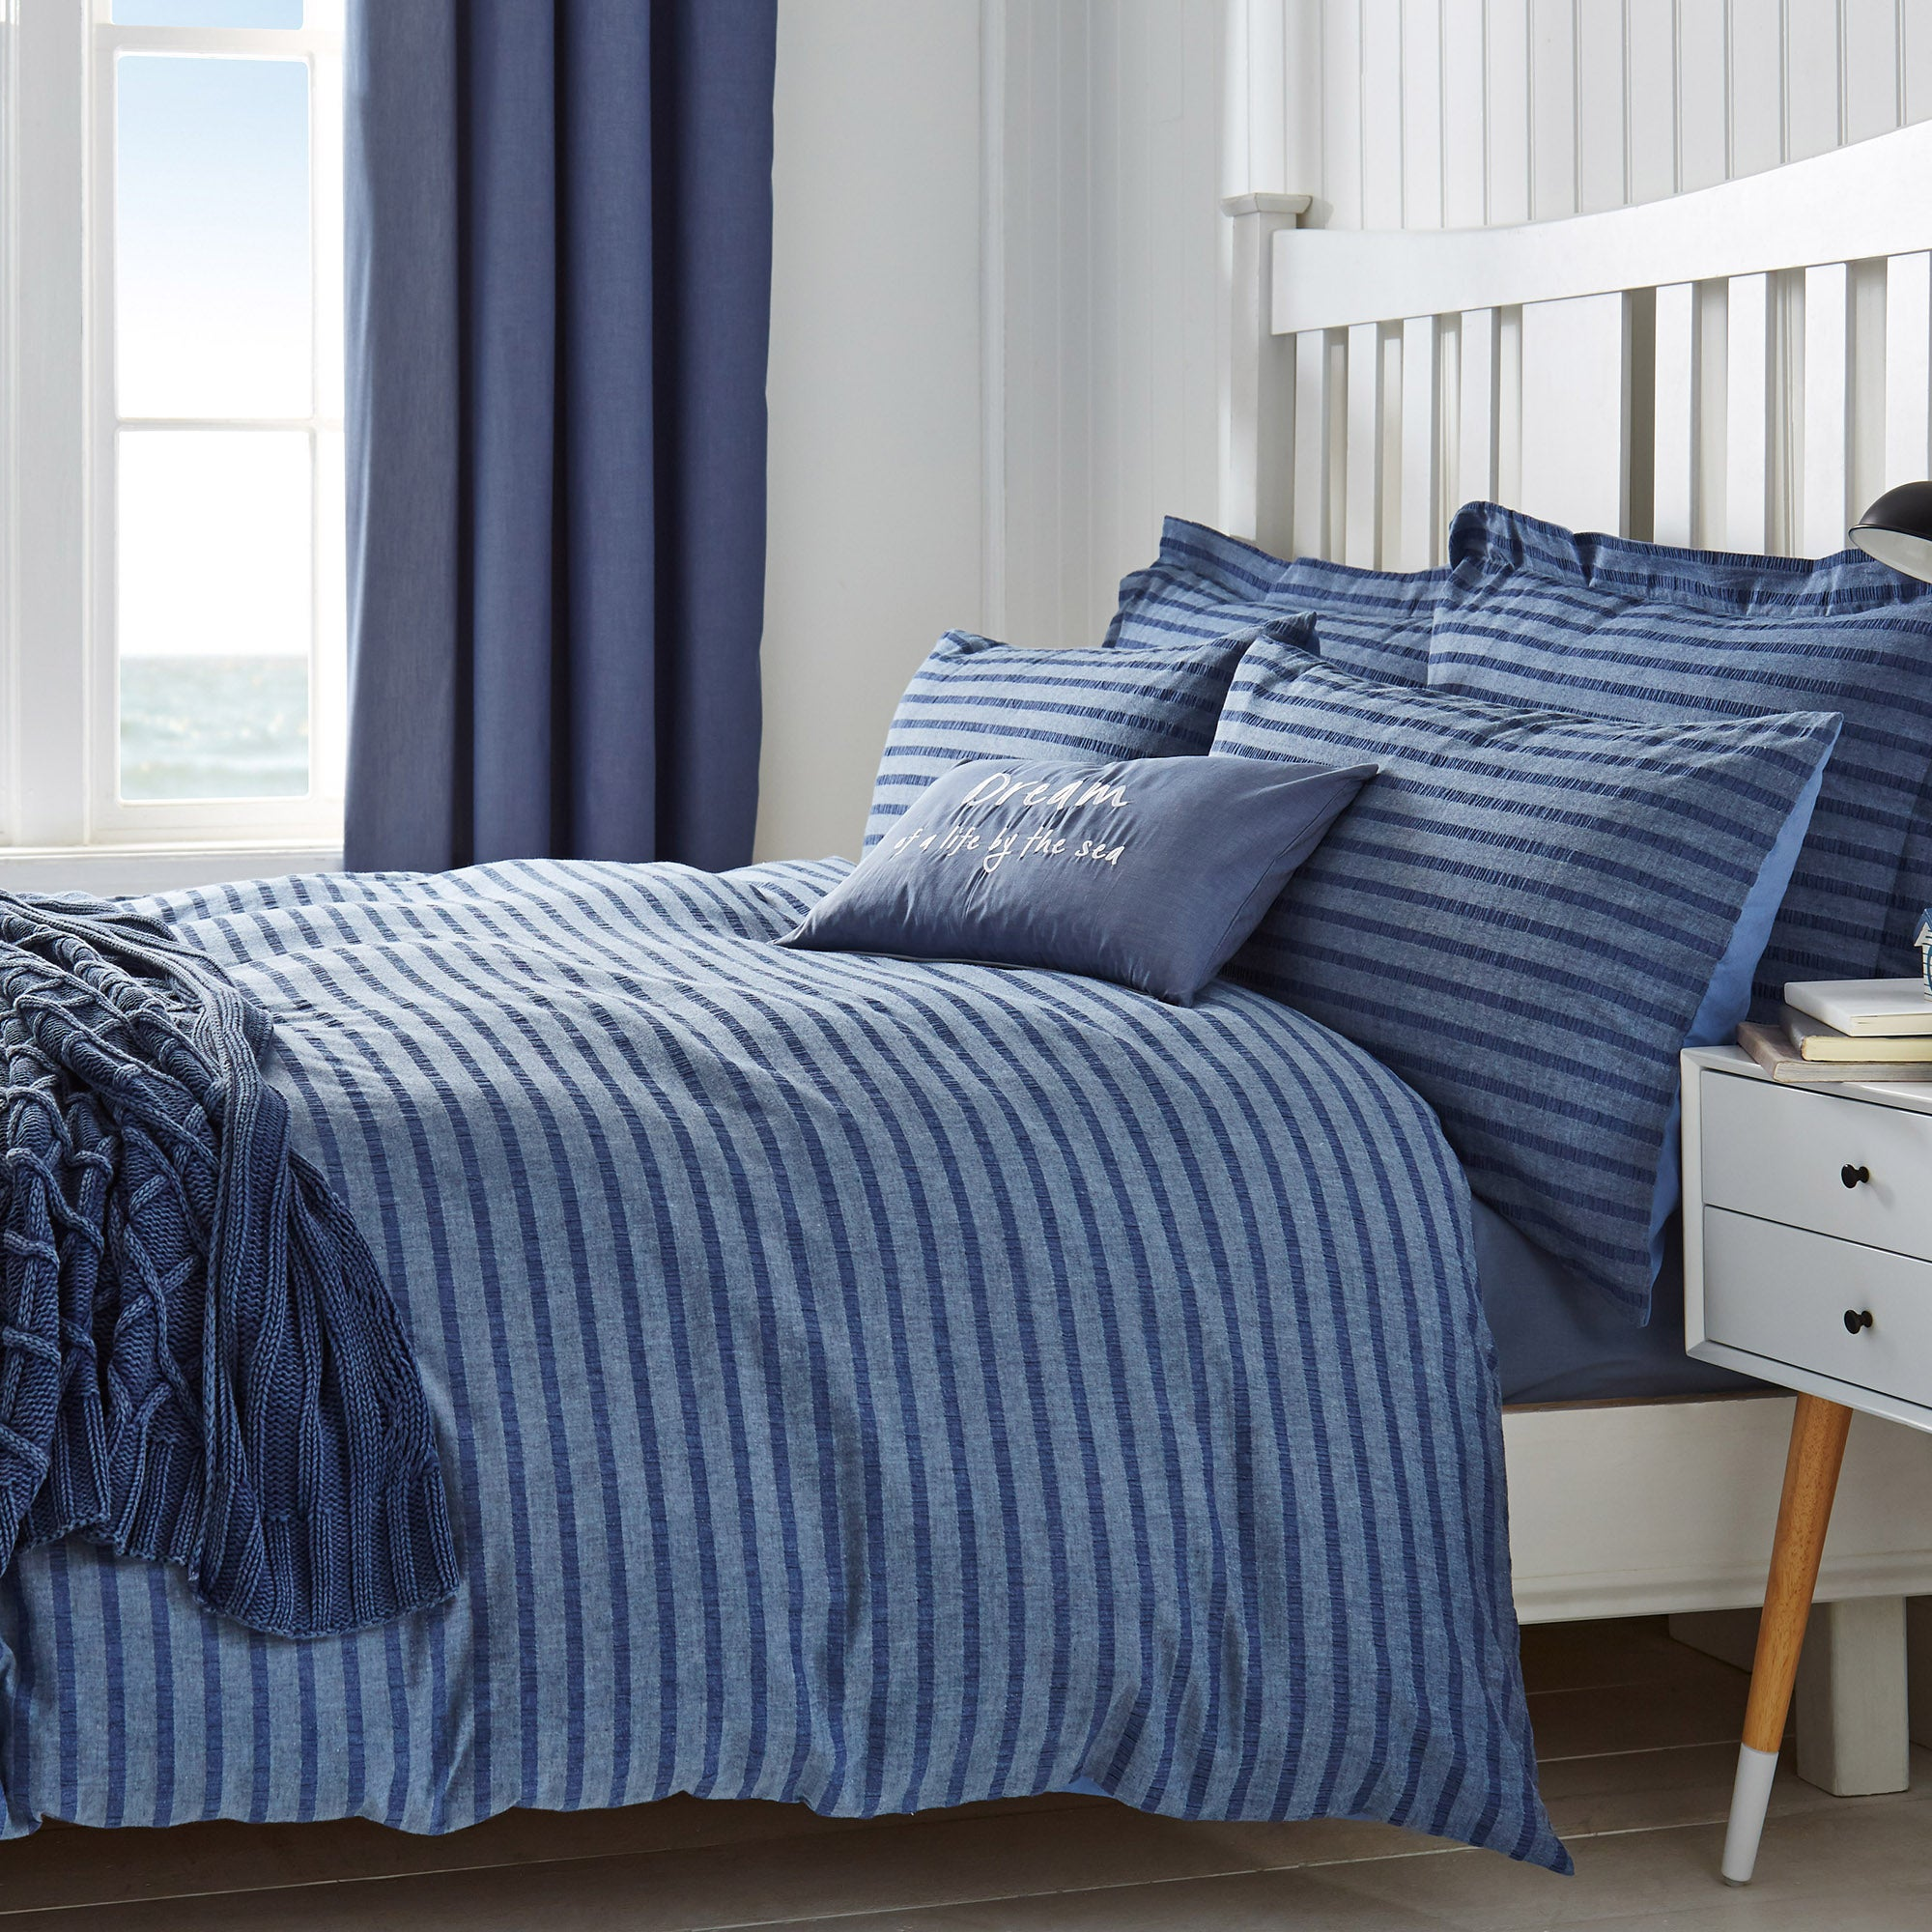 Arlo Seersucker Bed Linen Collection